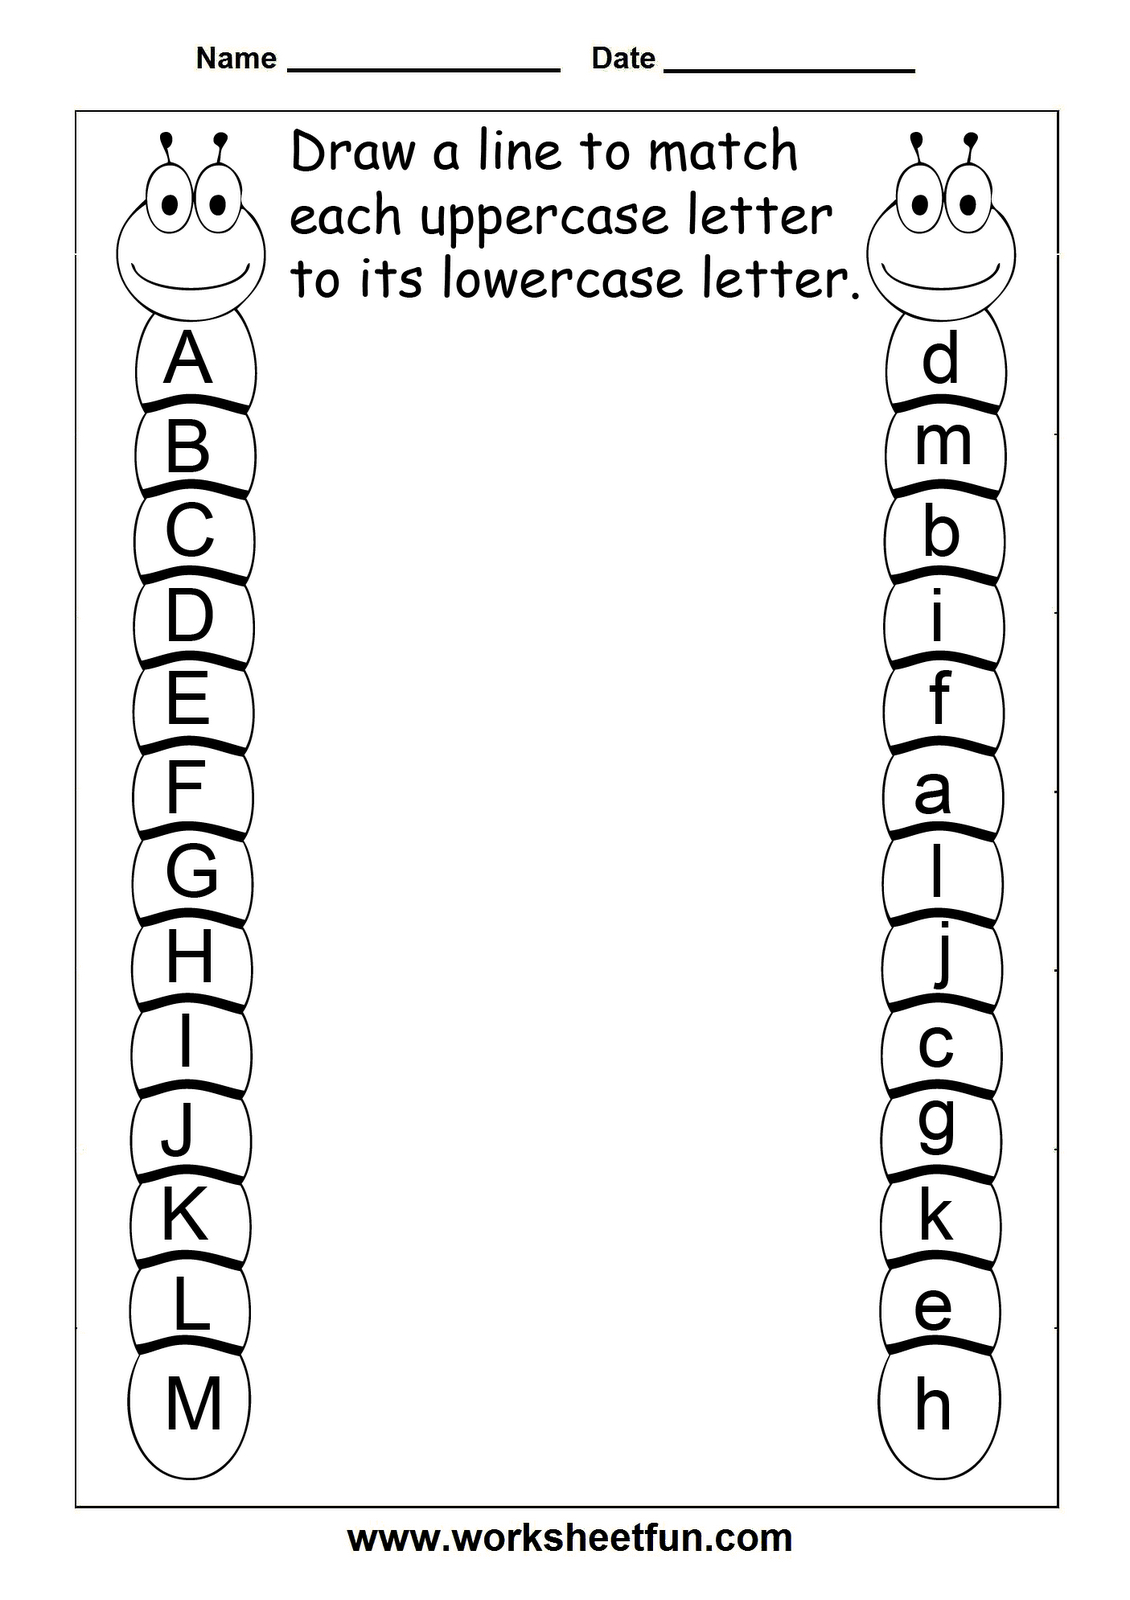 Free Printable Worksheets**** Prek-4Th Bunches Of Cute Stuff Love - Free Printable Pre K Worksheets